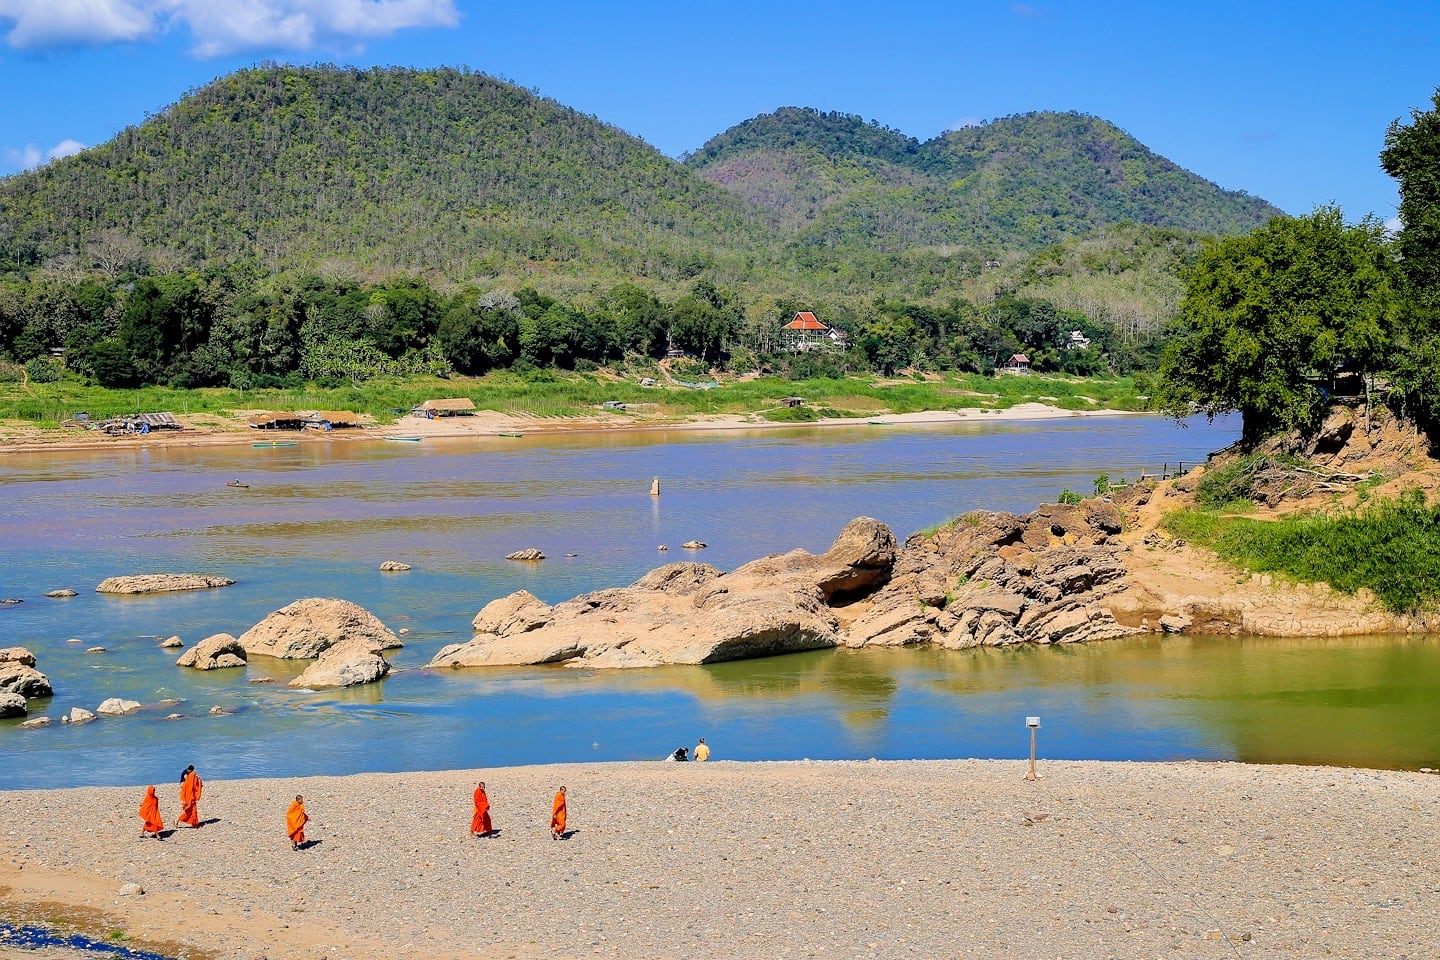 Buddhist monks Laos Mekong River